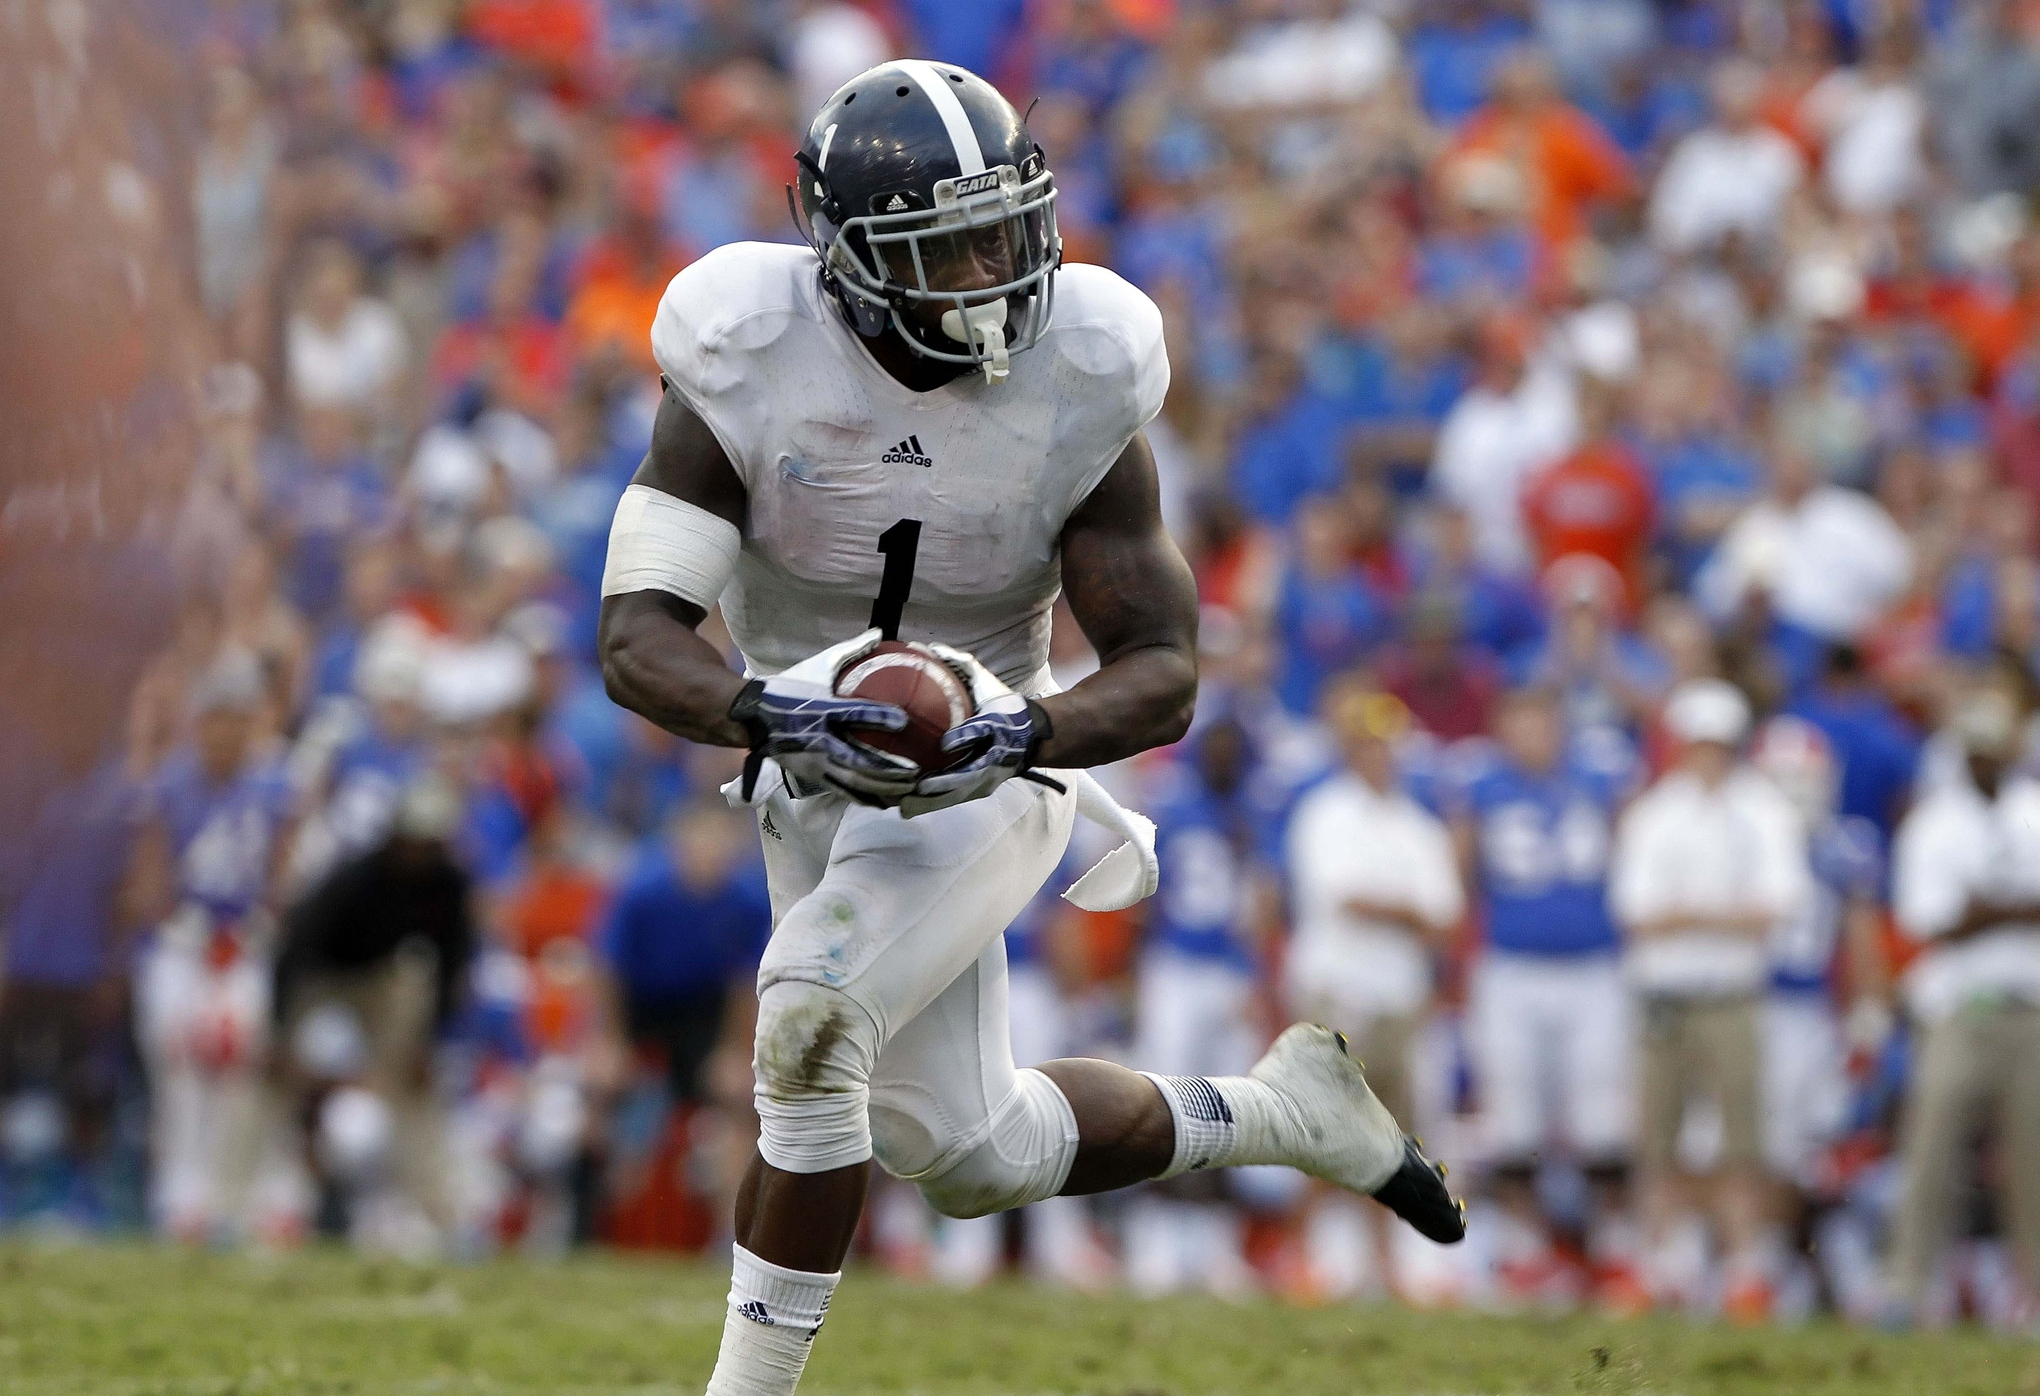 Nov 23, 2013; Gainesville, FL, USA; Georgia Southern Eagles quarterback/running back Jerick McKinnon (1) runs the ball in for the game winning touchdown against the Florida Gators during the second half at Ben Hill Griffin Stadium. Georgia Southern E